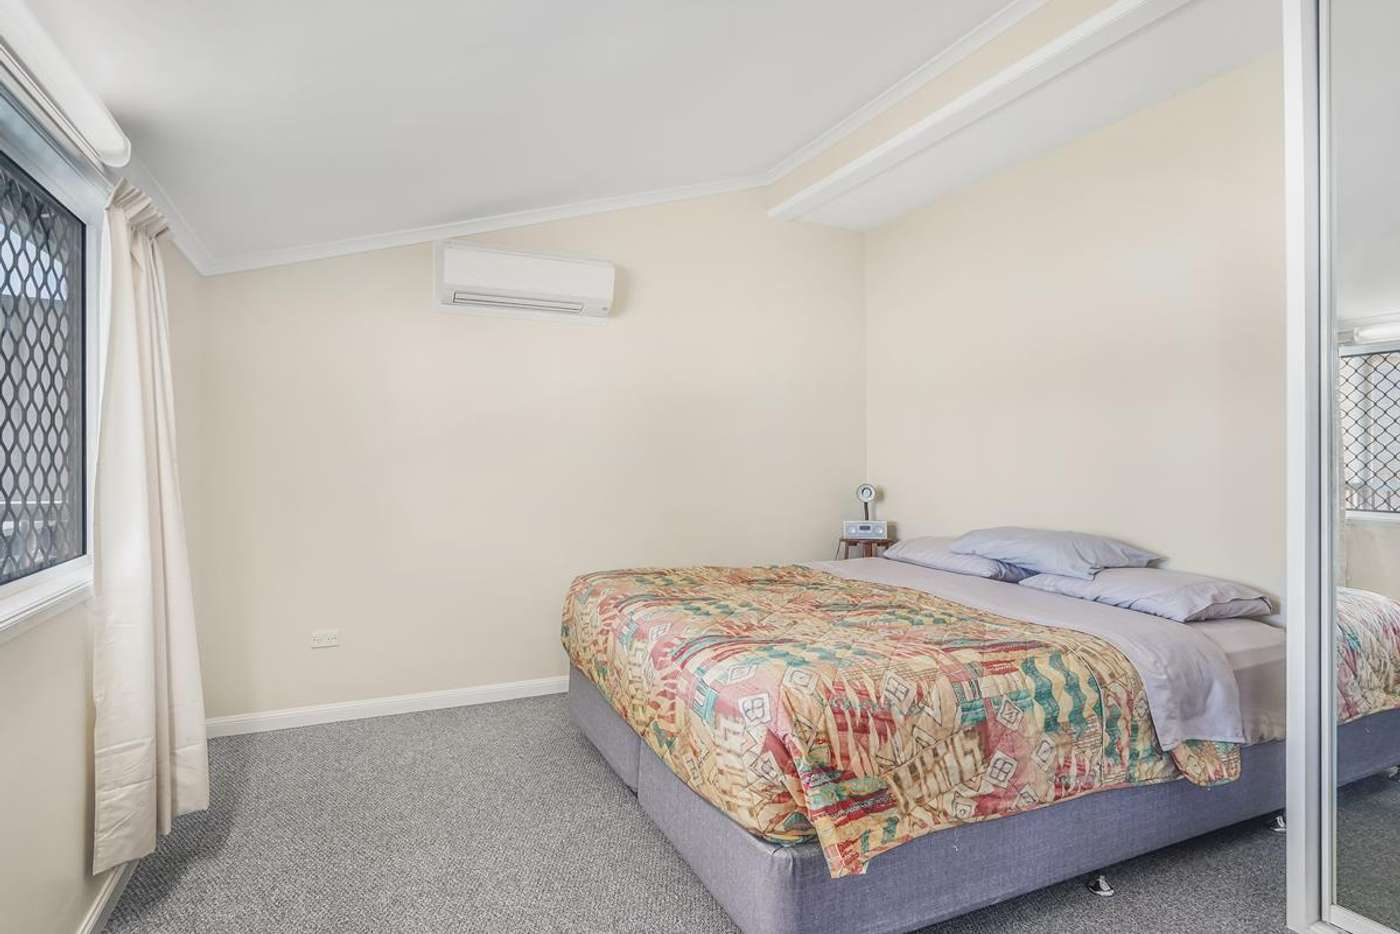 Seventh view of Homely house listing, 57 Nelson Street, Bungalow QLD 4870